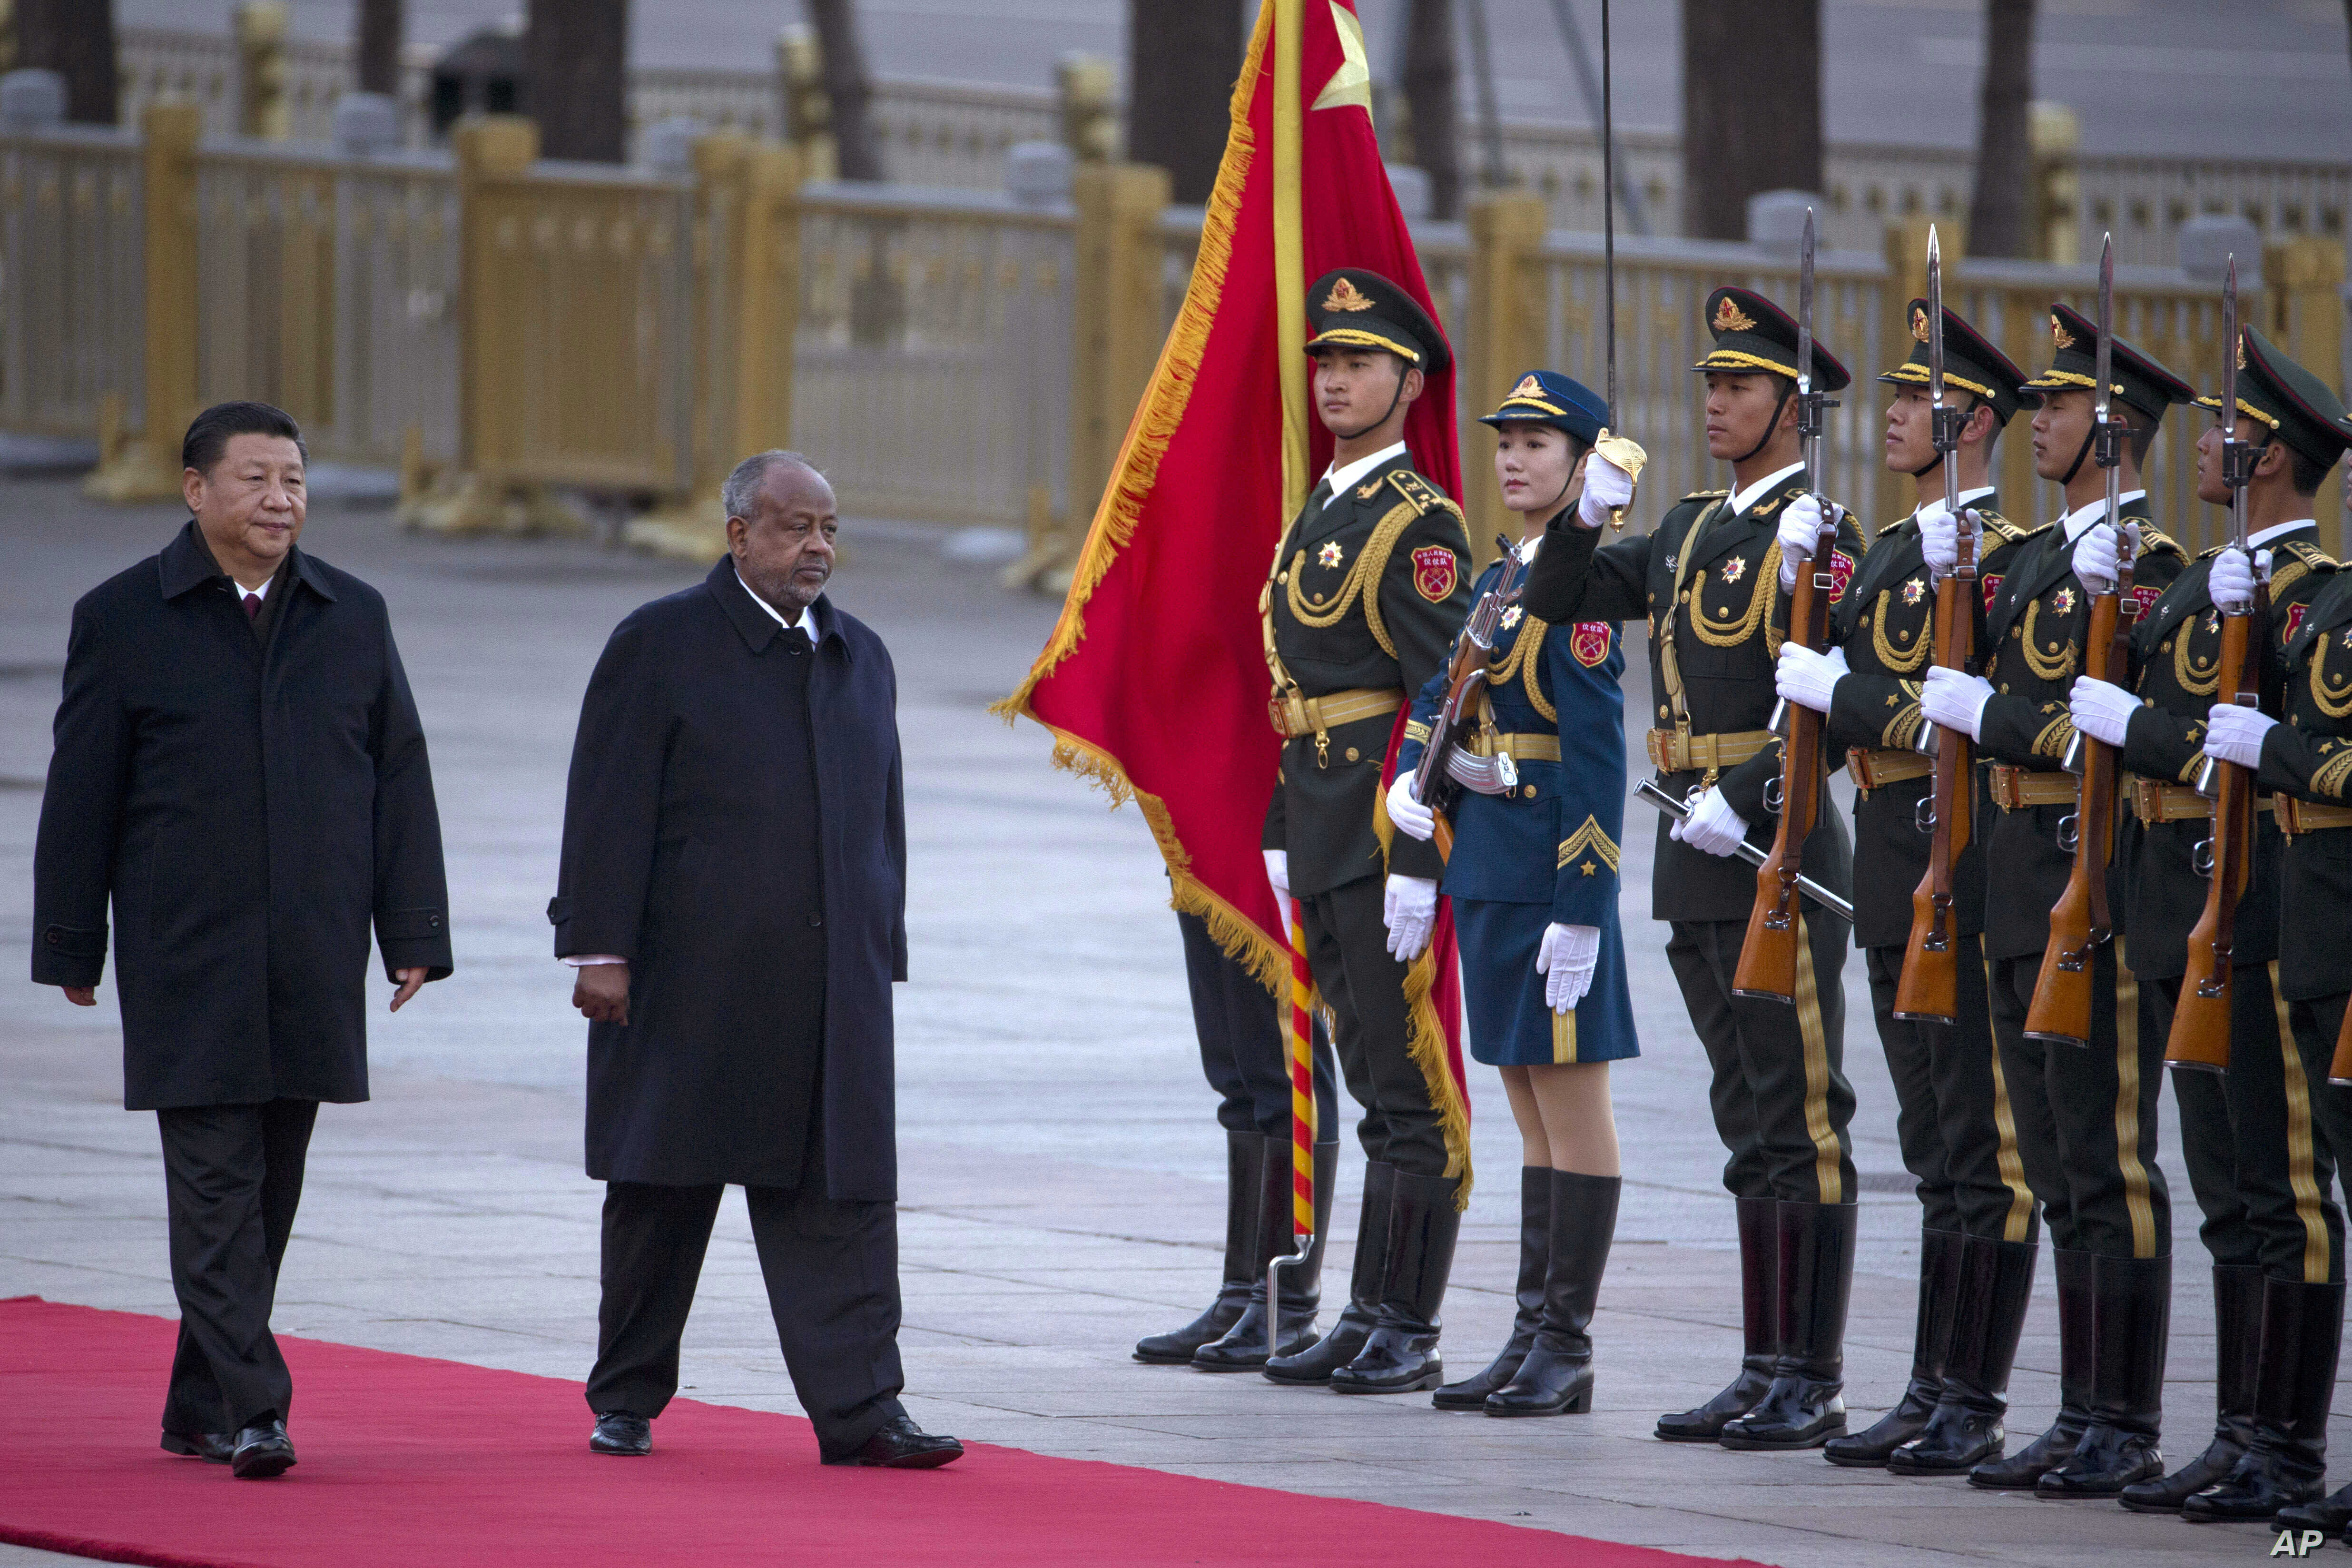 FILE - Djibouti's President Ismail Omar Guelleh (2nd-L) walks with Chinese President Xi Jinping during a welcome ceremony held outside the Great Hall of the People in Beijing, China, Nov. 23, 2017.